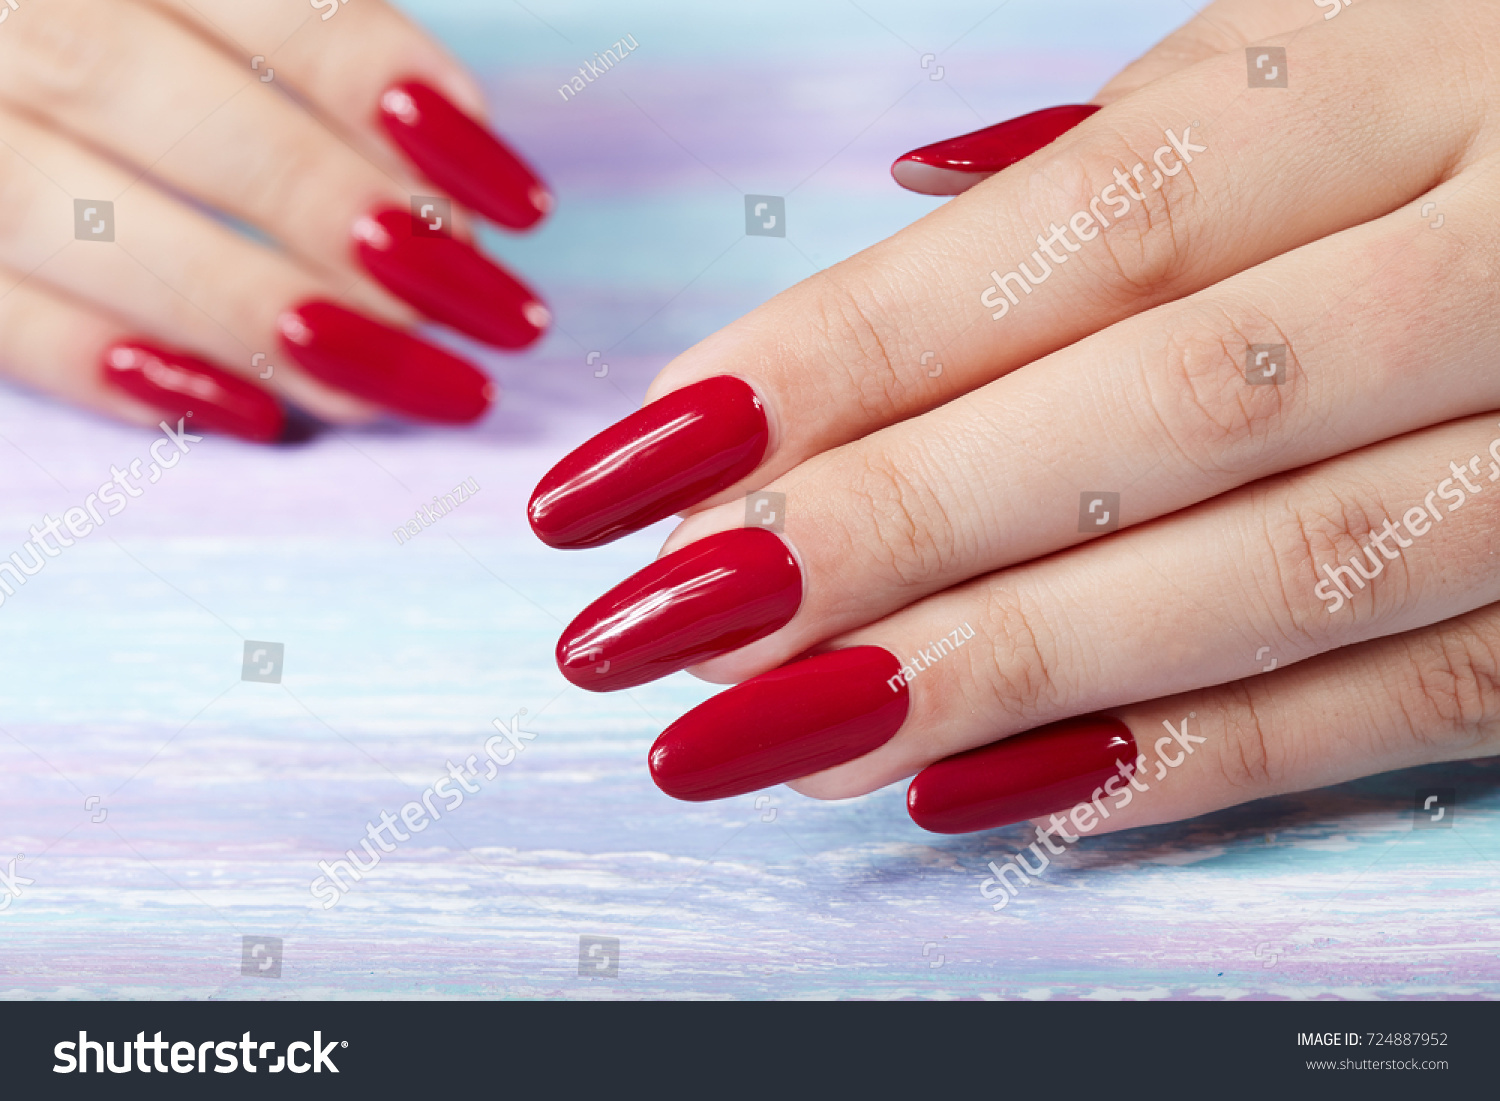 Hands Long Artificial Manicured Nails Colored Stock Photo (Royalty ...